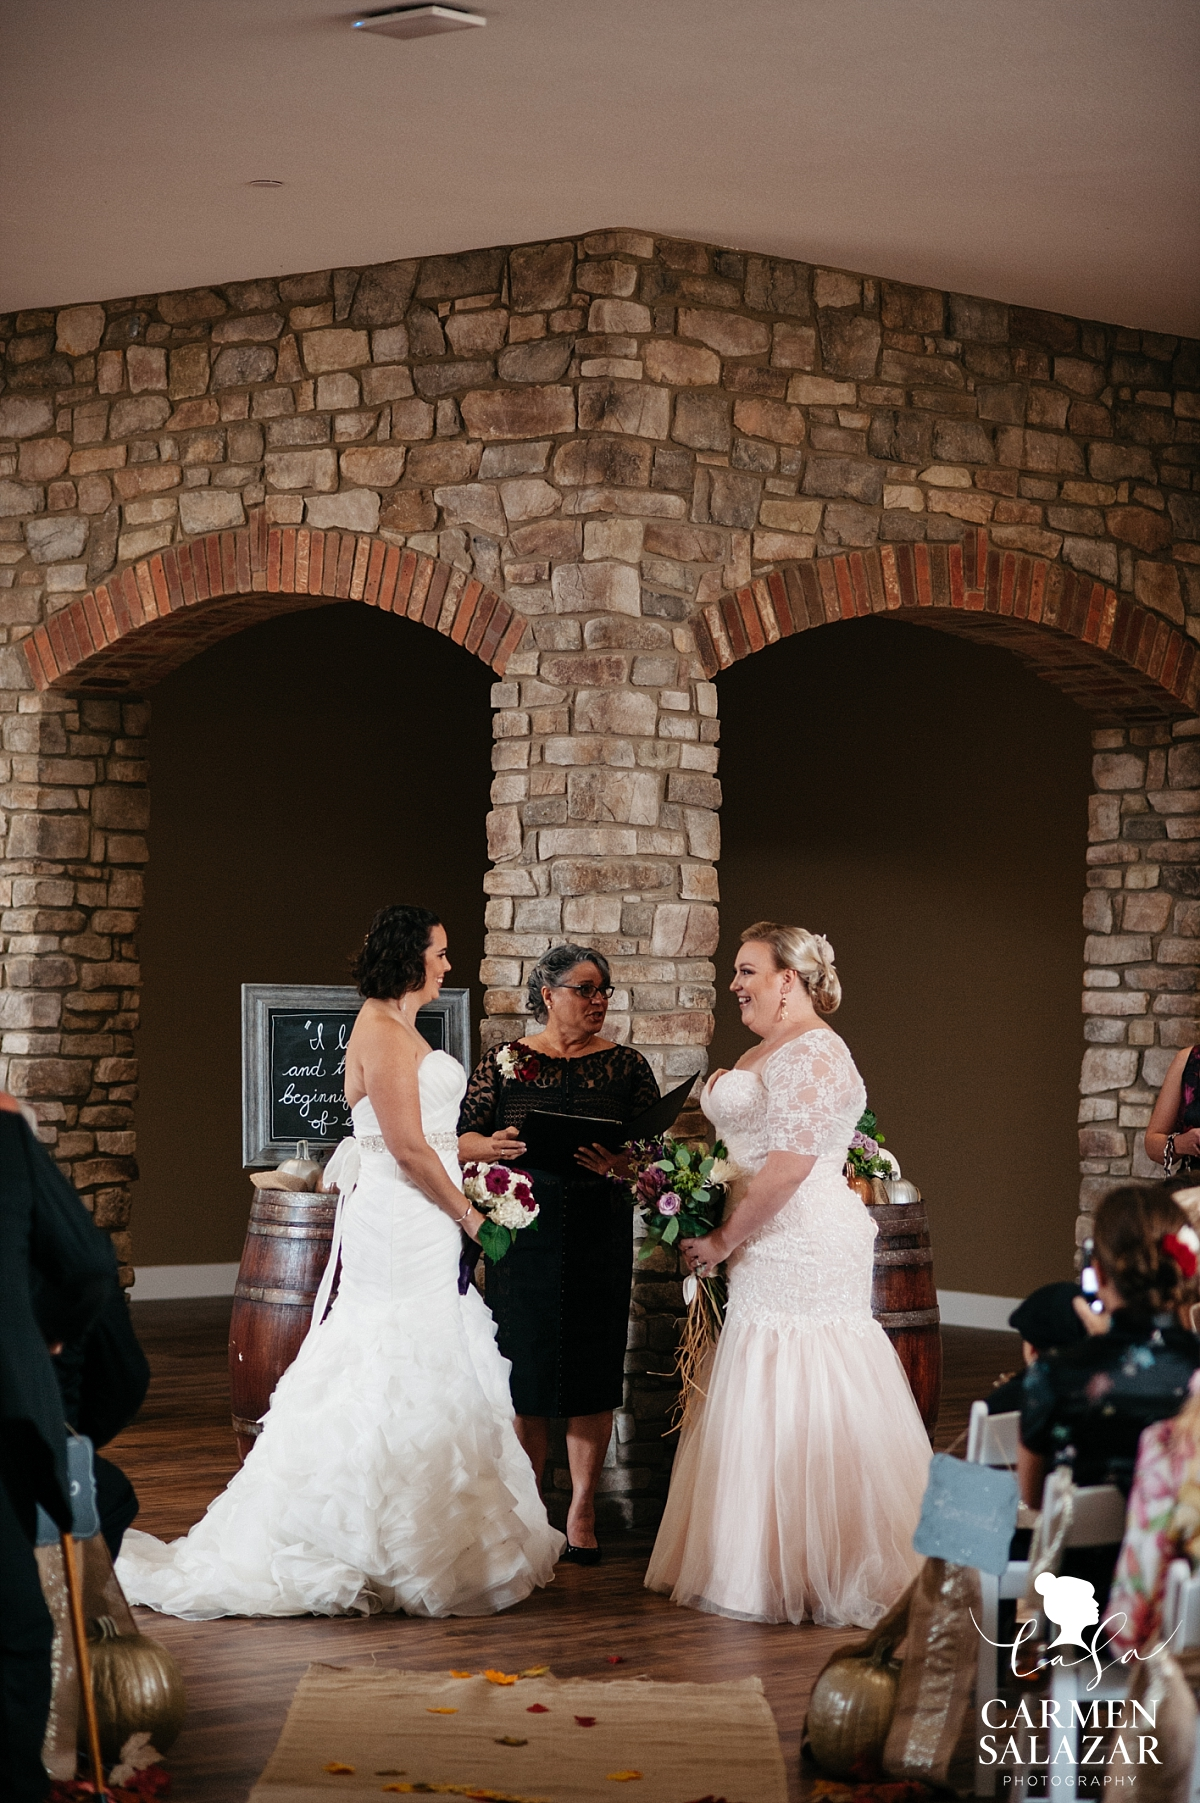 Lesbian wedding ceremony at Leer Vineyards - Carmen Salazar